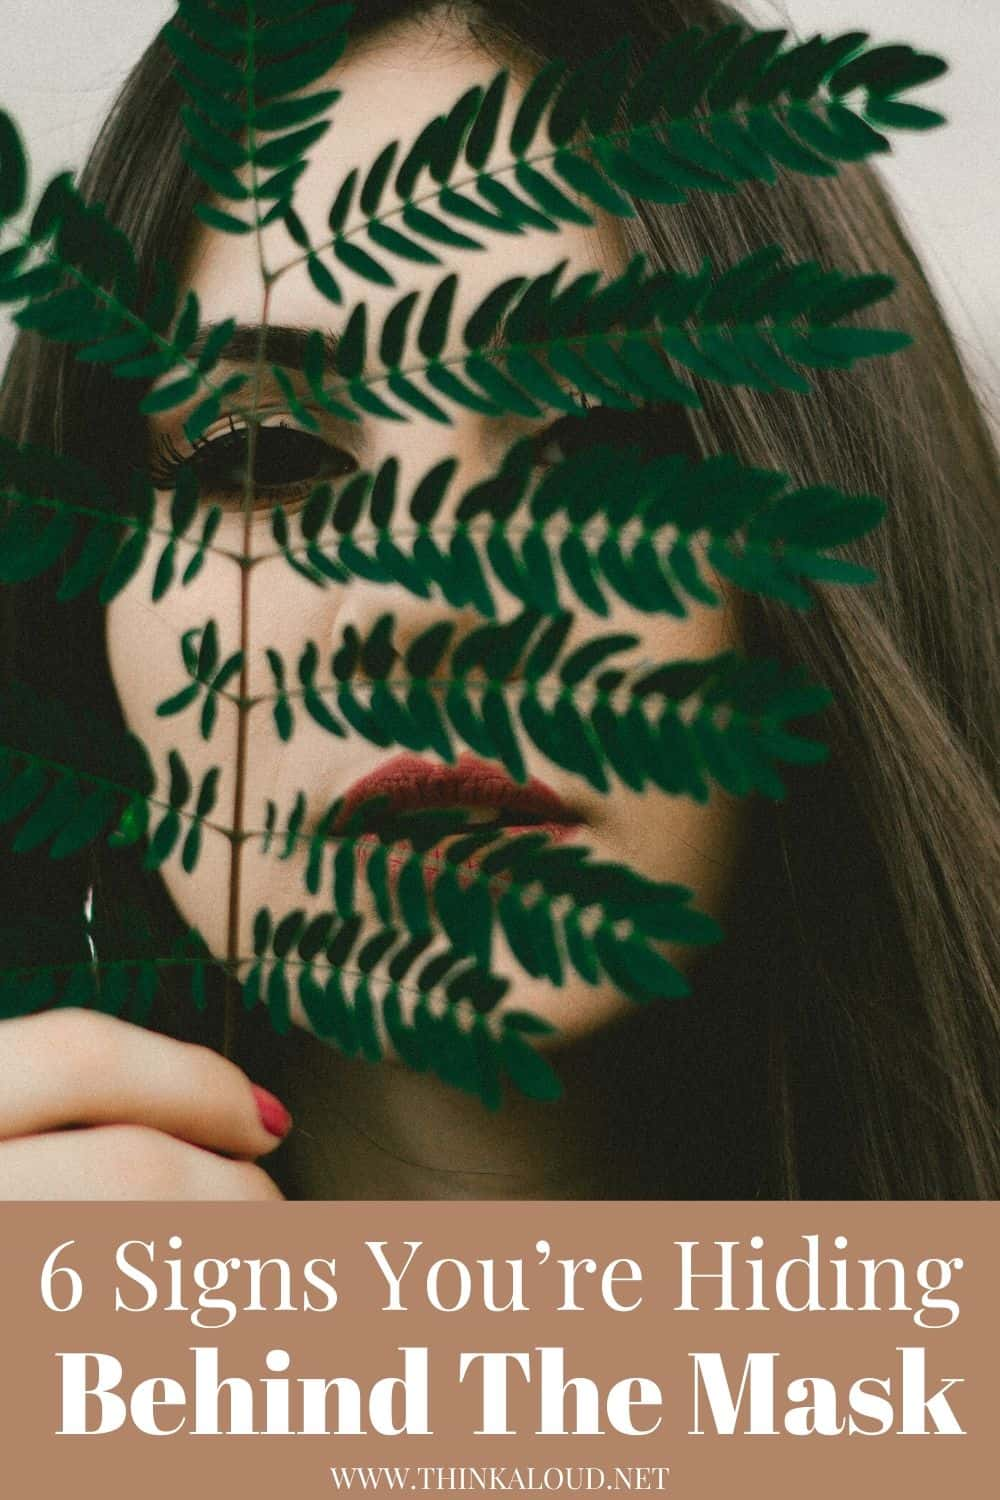 6 Signs You're Hiding Behind The Mask